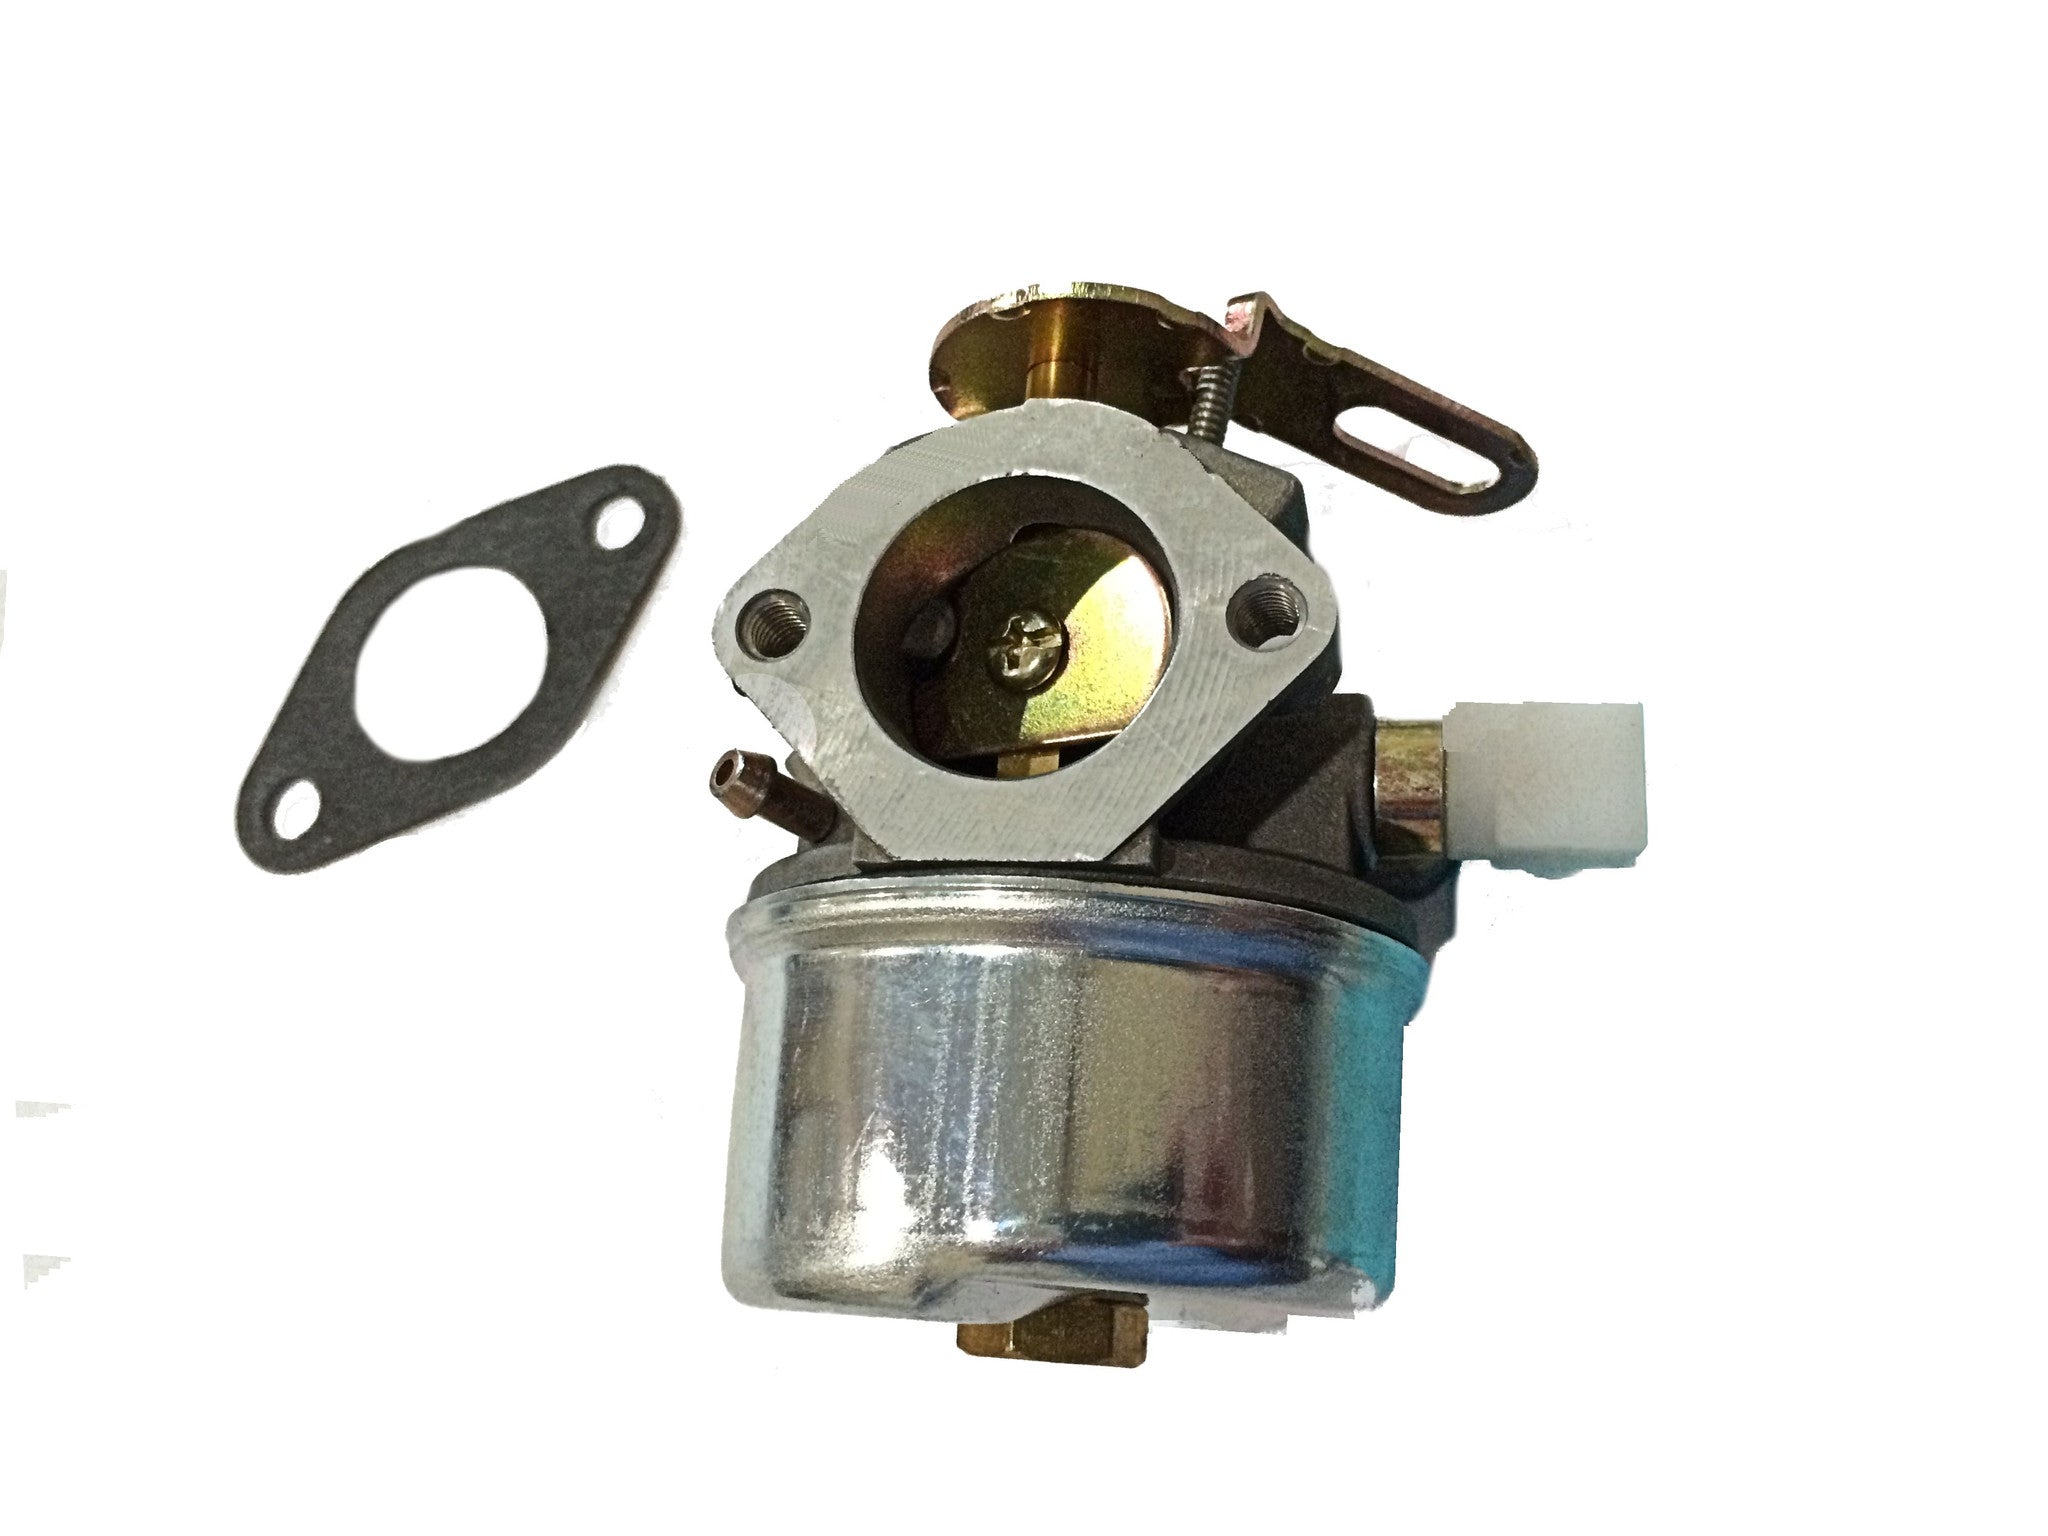 CARBURETOR SNOW BLOWER TECUMSEH 640084 640084A 640084B MTD 31A-611D000 W/ GASKET